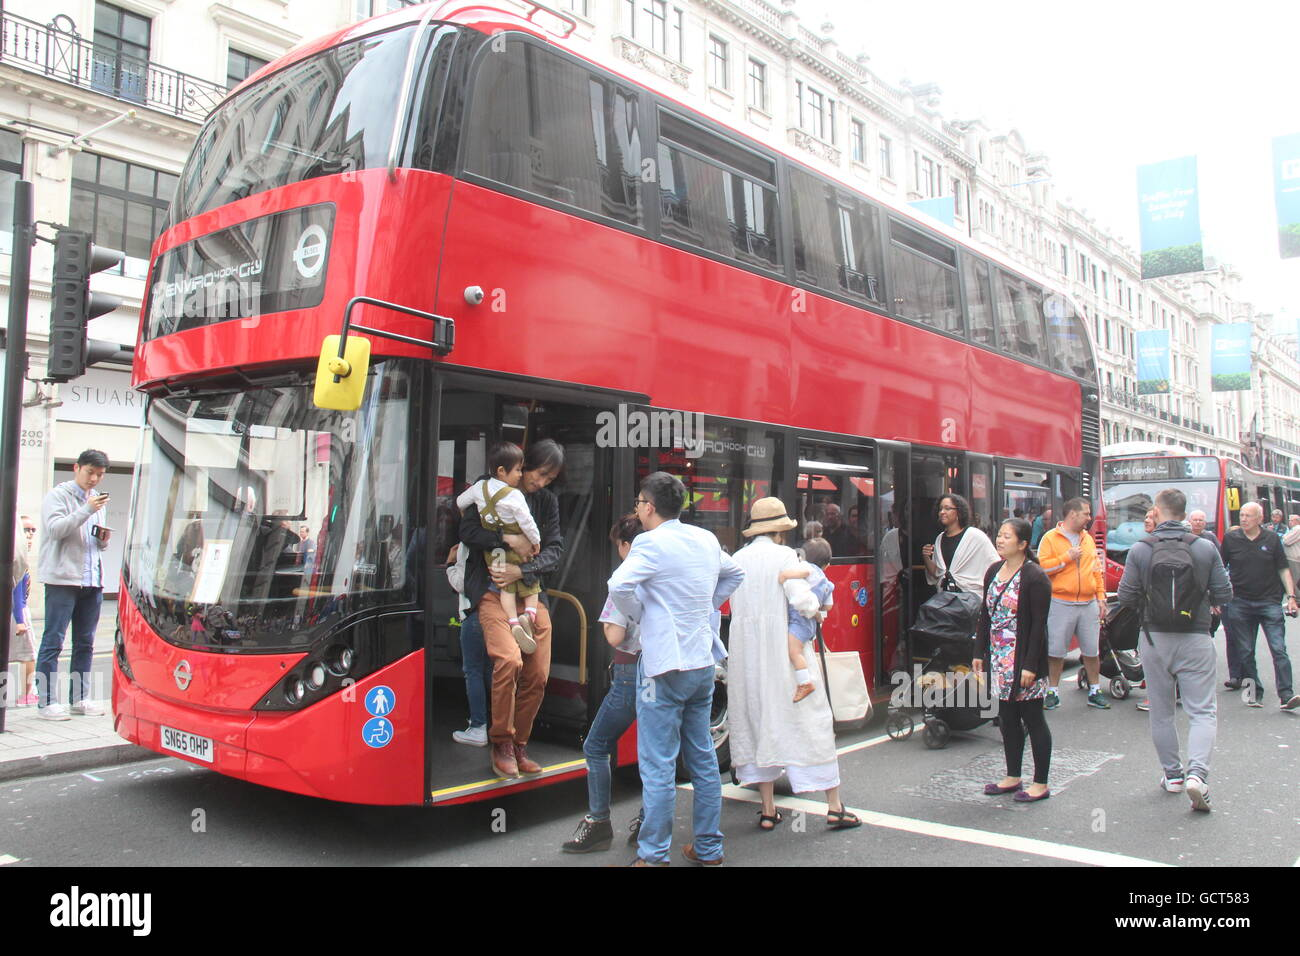 ALEXANDER DENNIS ENVIRO 400H CITY RED LONDON BUS NEARSIDE LANDSCAPE VIEW AT TRANSPORTED BY DESIGN FESTIVAL IN LONDON - Stock Image